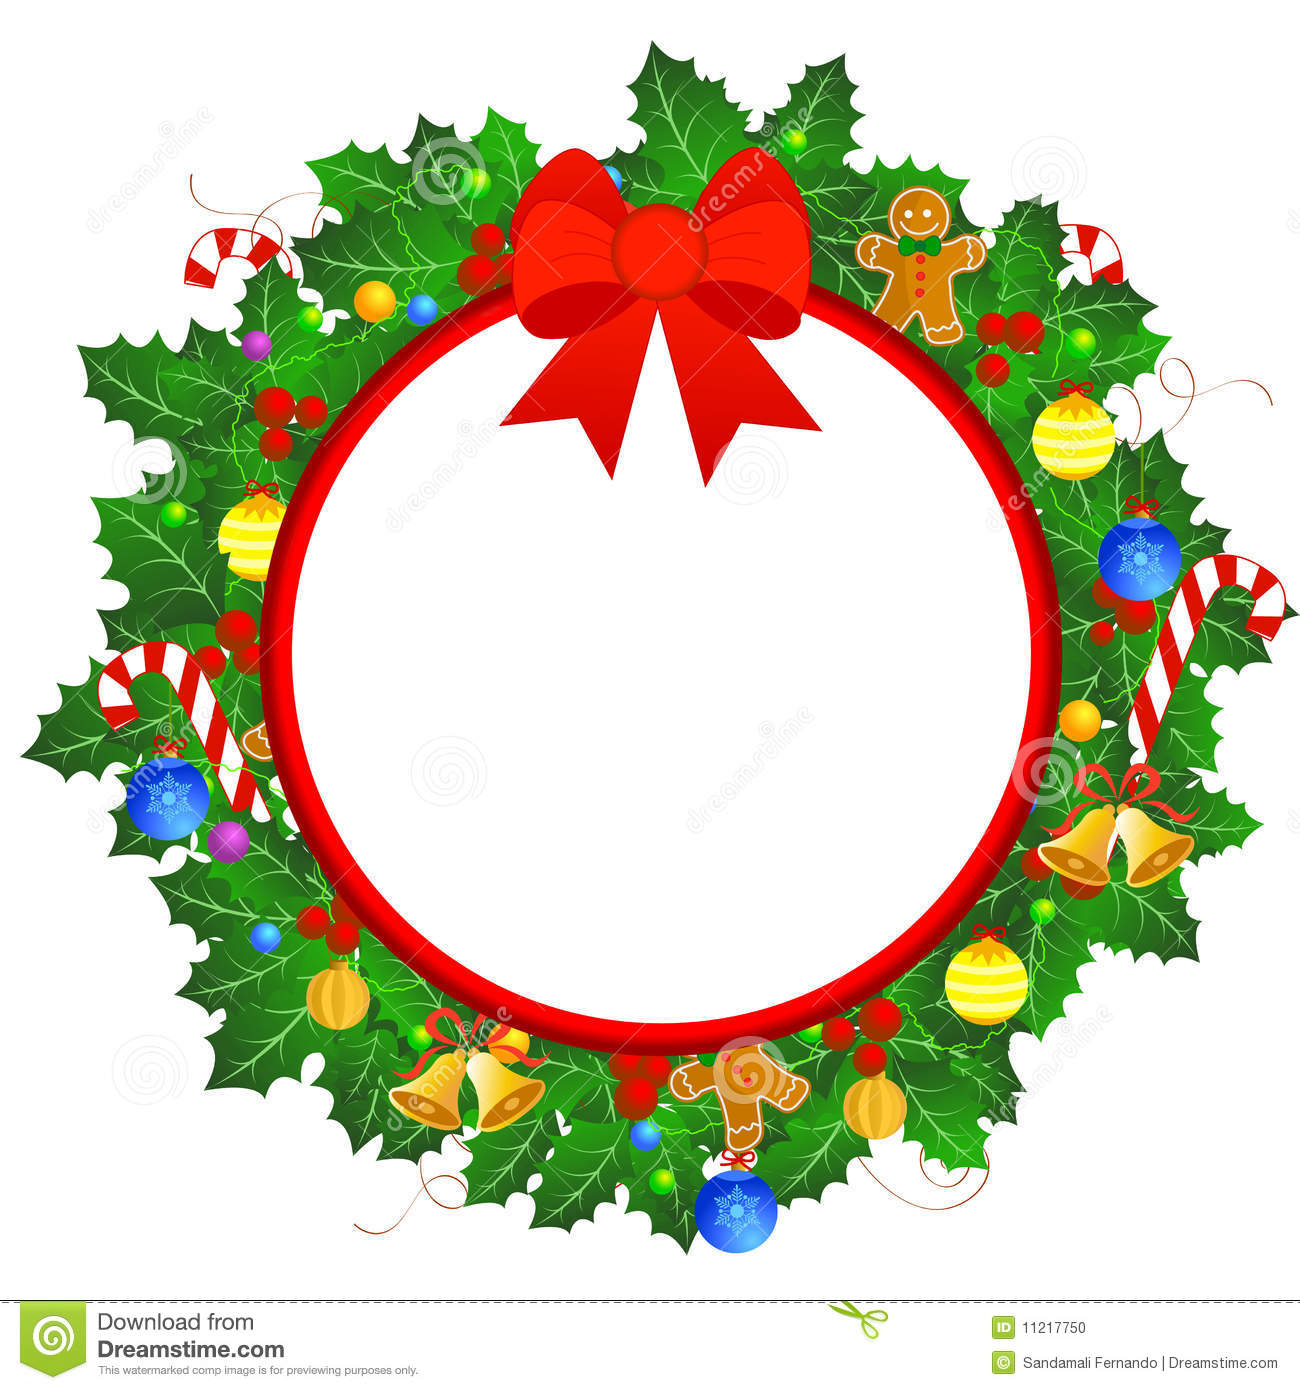 Beautiful Christmas Wreath Border With Colorful Christmas Ornaments